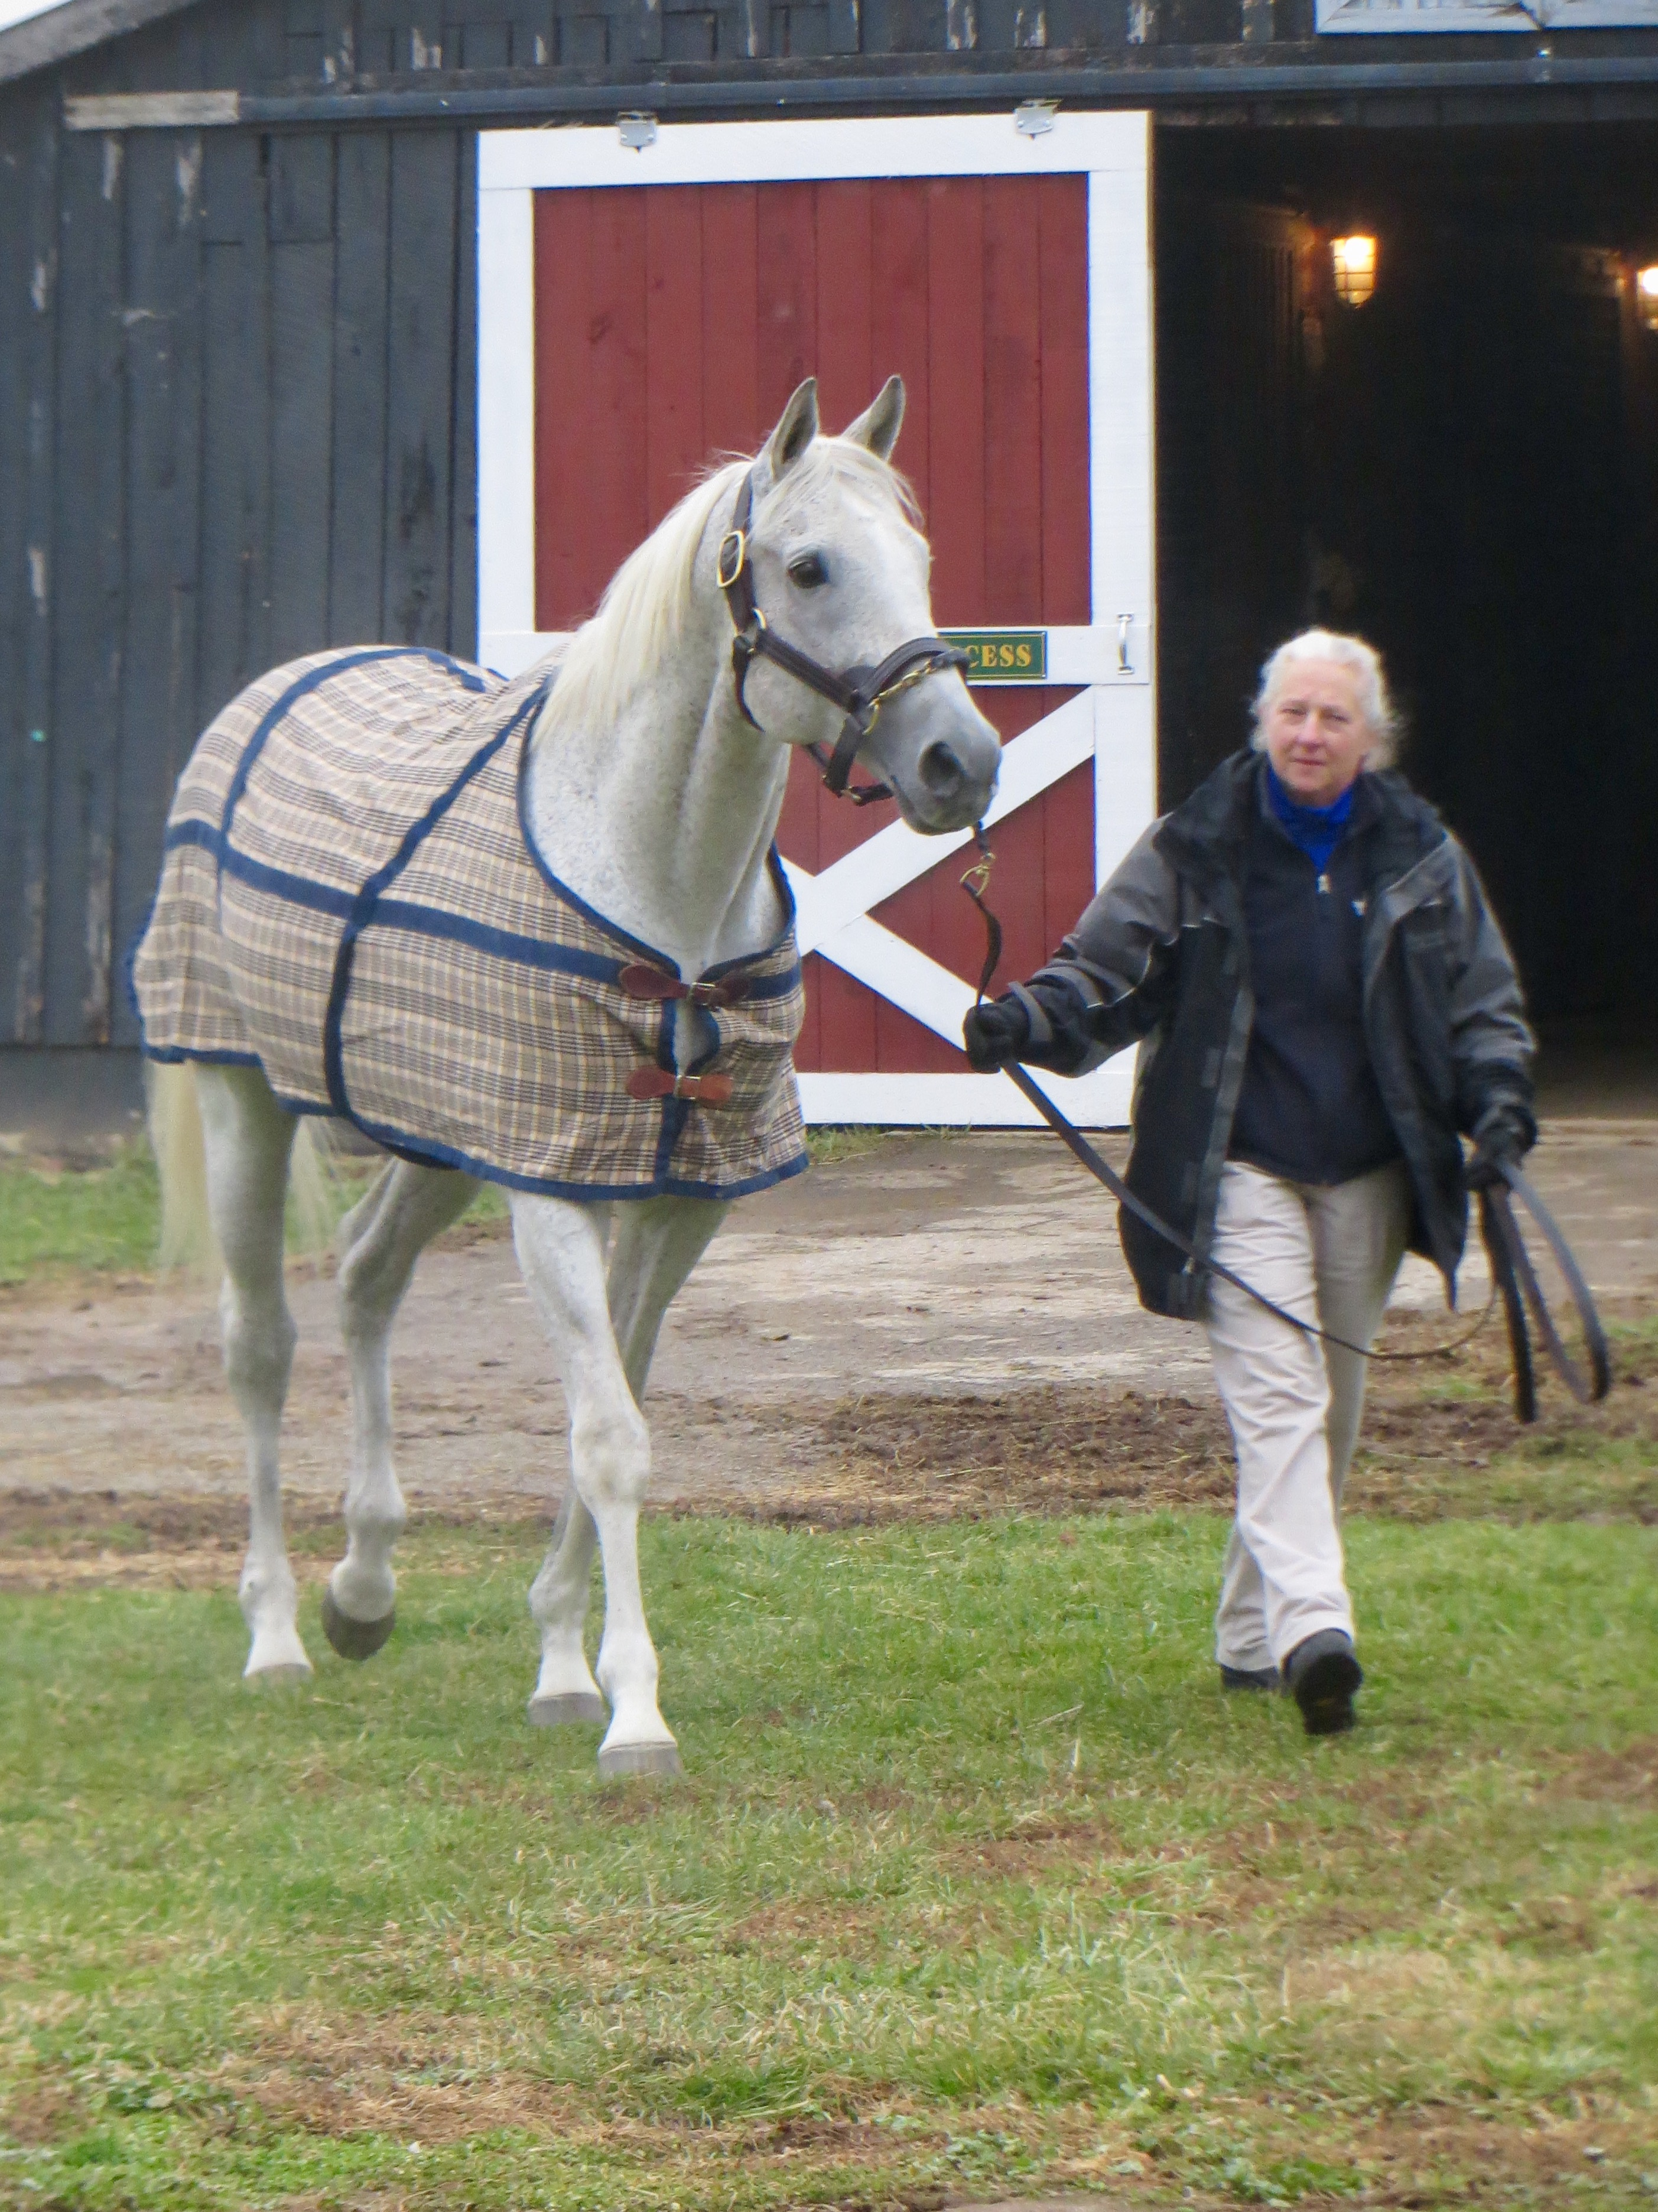 Back in the USA: Silver Charm is introduced to Old Friends on his return from Japan in 2014 by Three Chimneys stallion manager Sandy Hatfield. Photo: Amanda Duckworth